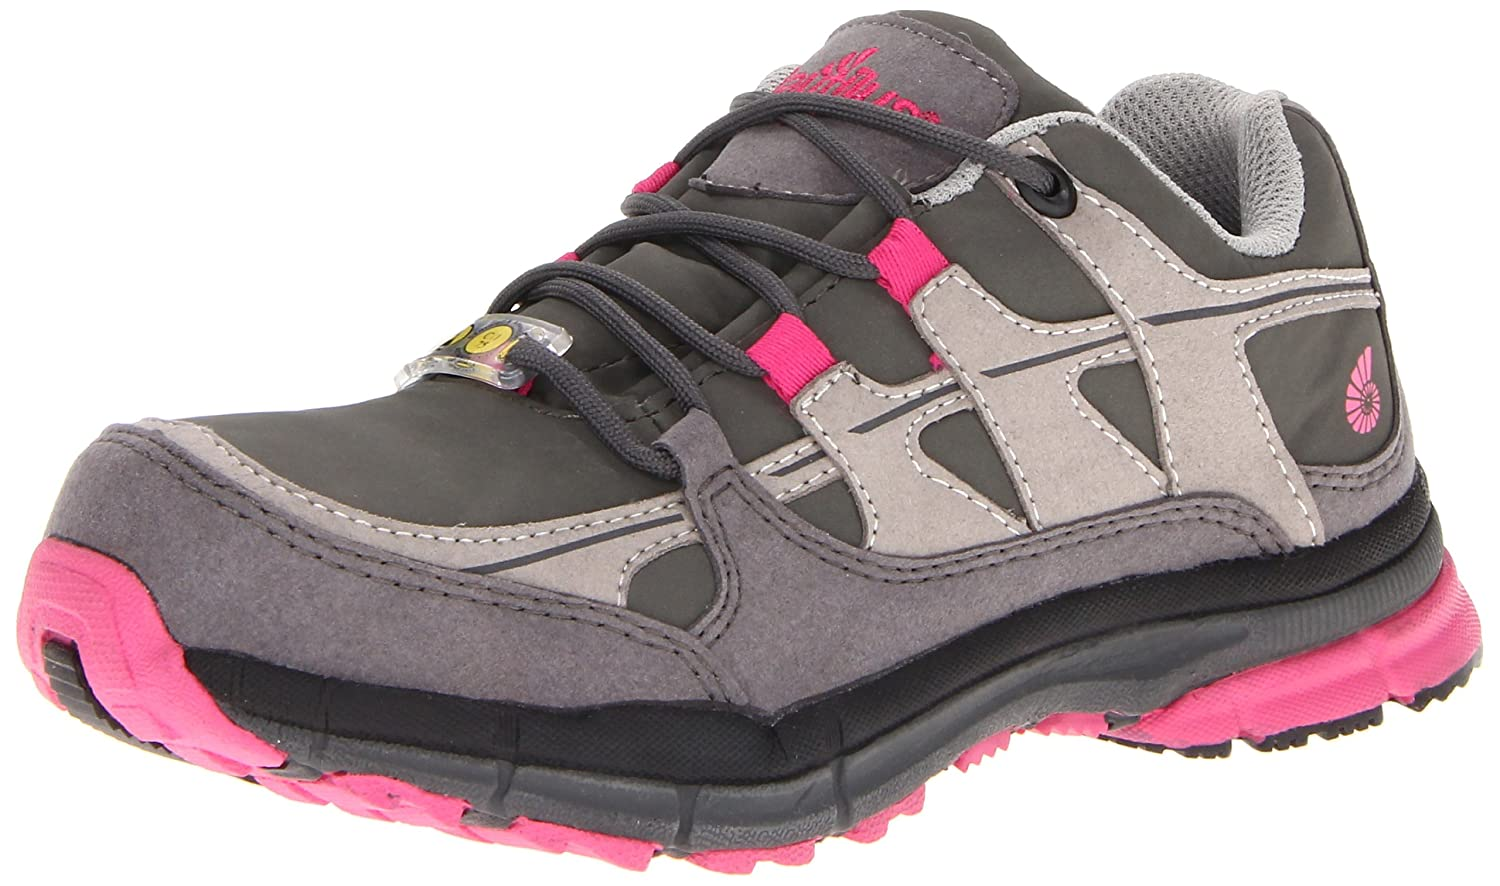 Amazon.com: Nautilus 1771 Women's ESD No Exposed Metal EH Safety Toe  Athletic Shoe: Shoes